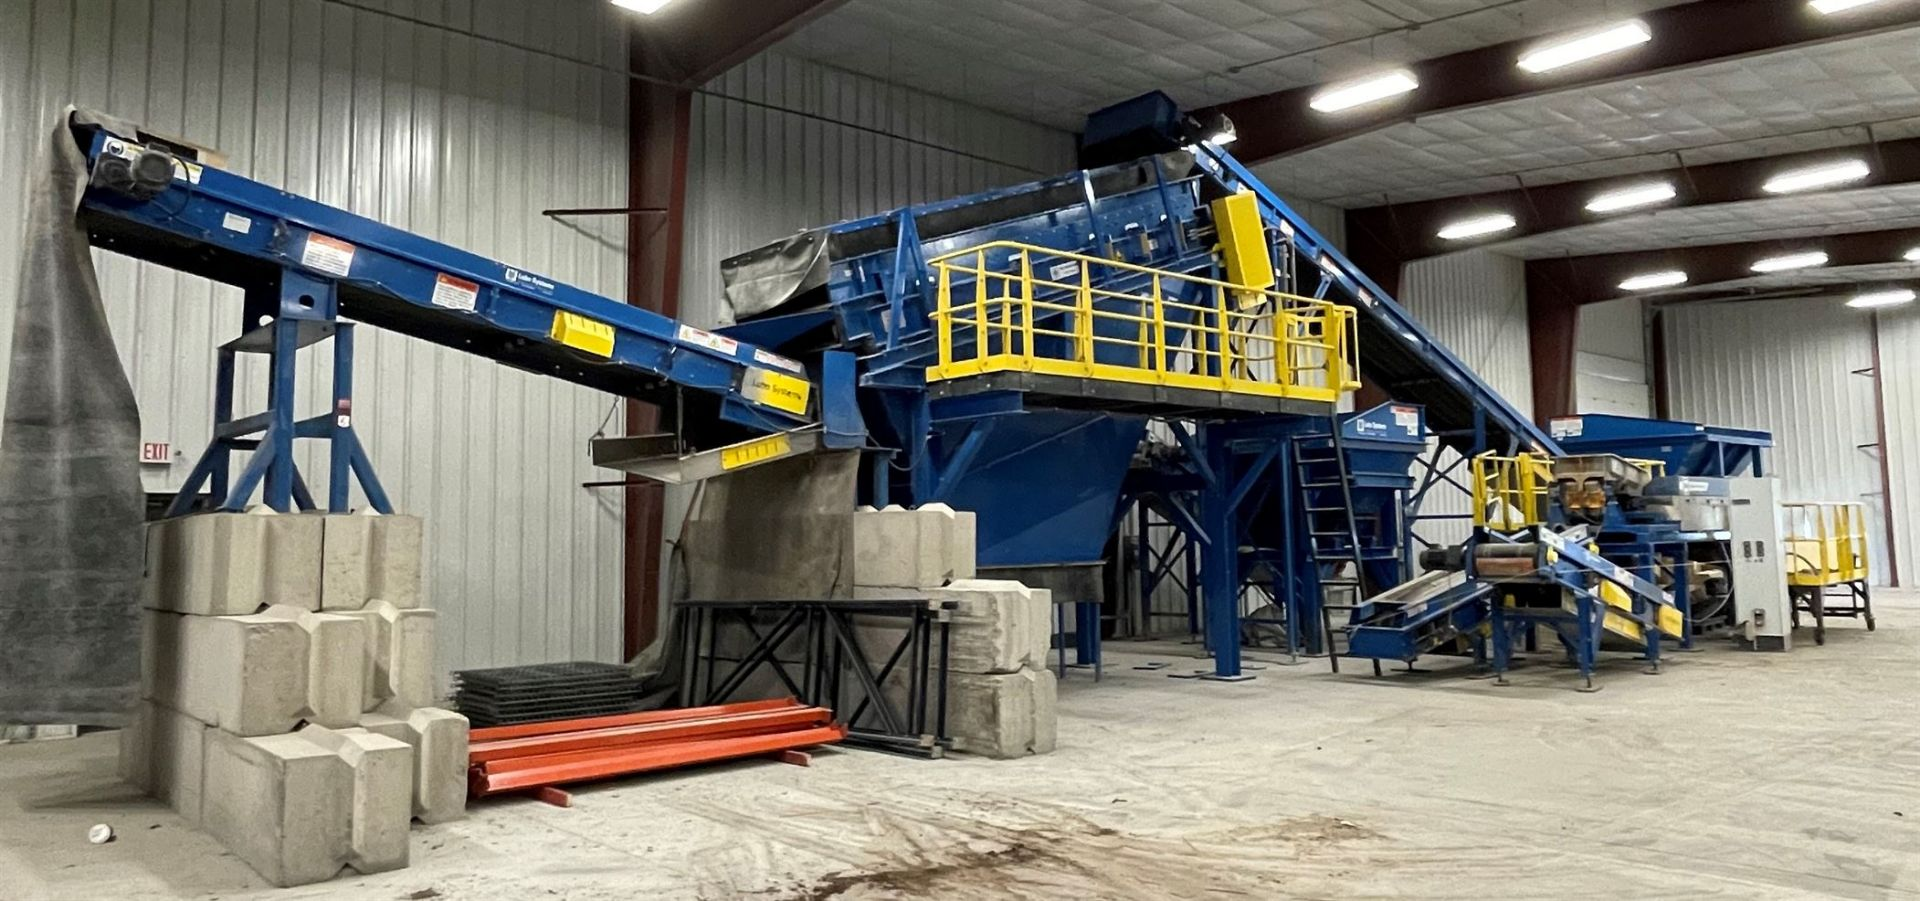 BULK LOT: 2015 VDL SYSTEMS Metal Recovery Shaker Separation Line as a Complete System, Comprising - Image 2 of 10